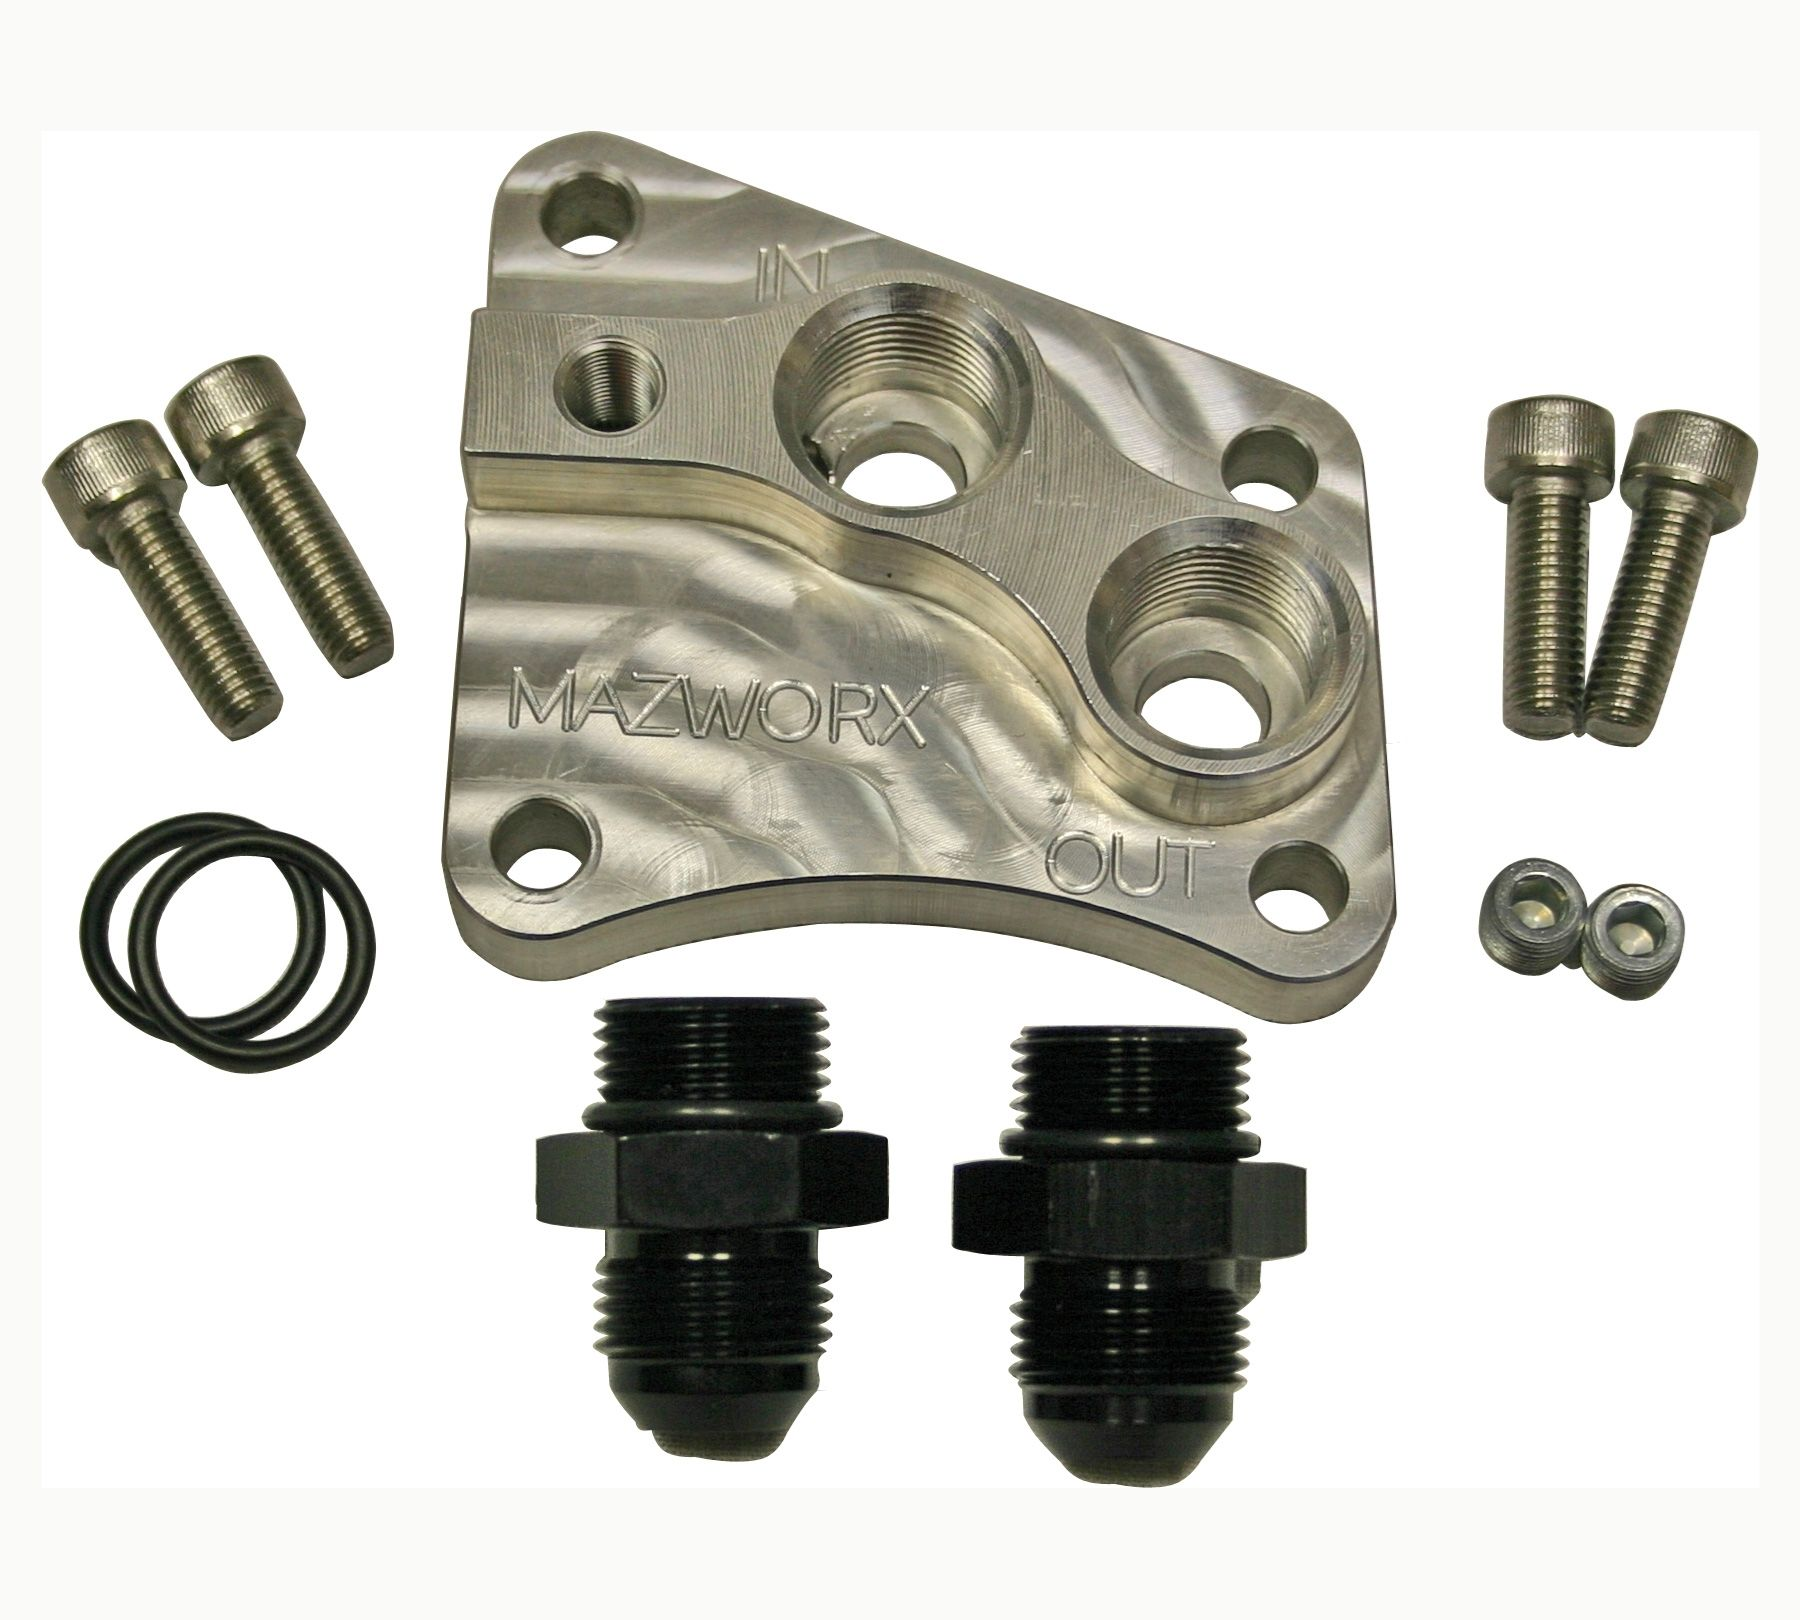 Mazworx Billet Oil Block Adapter - Nissan SR20DET RWD